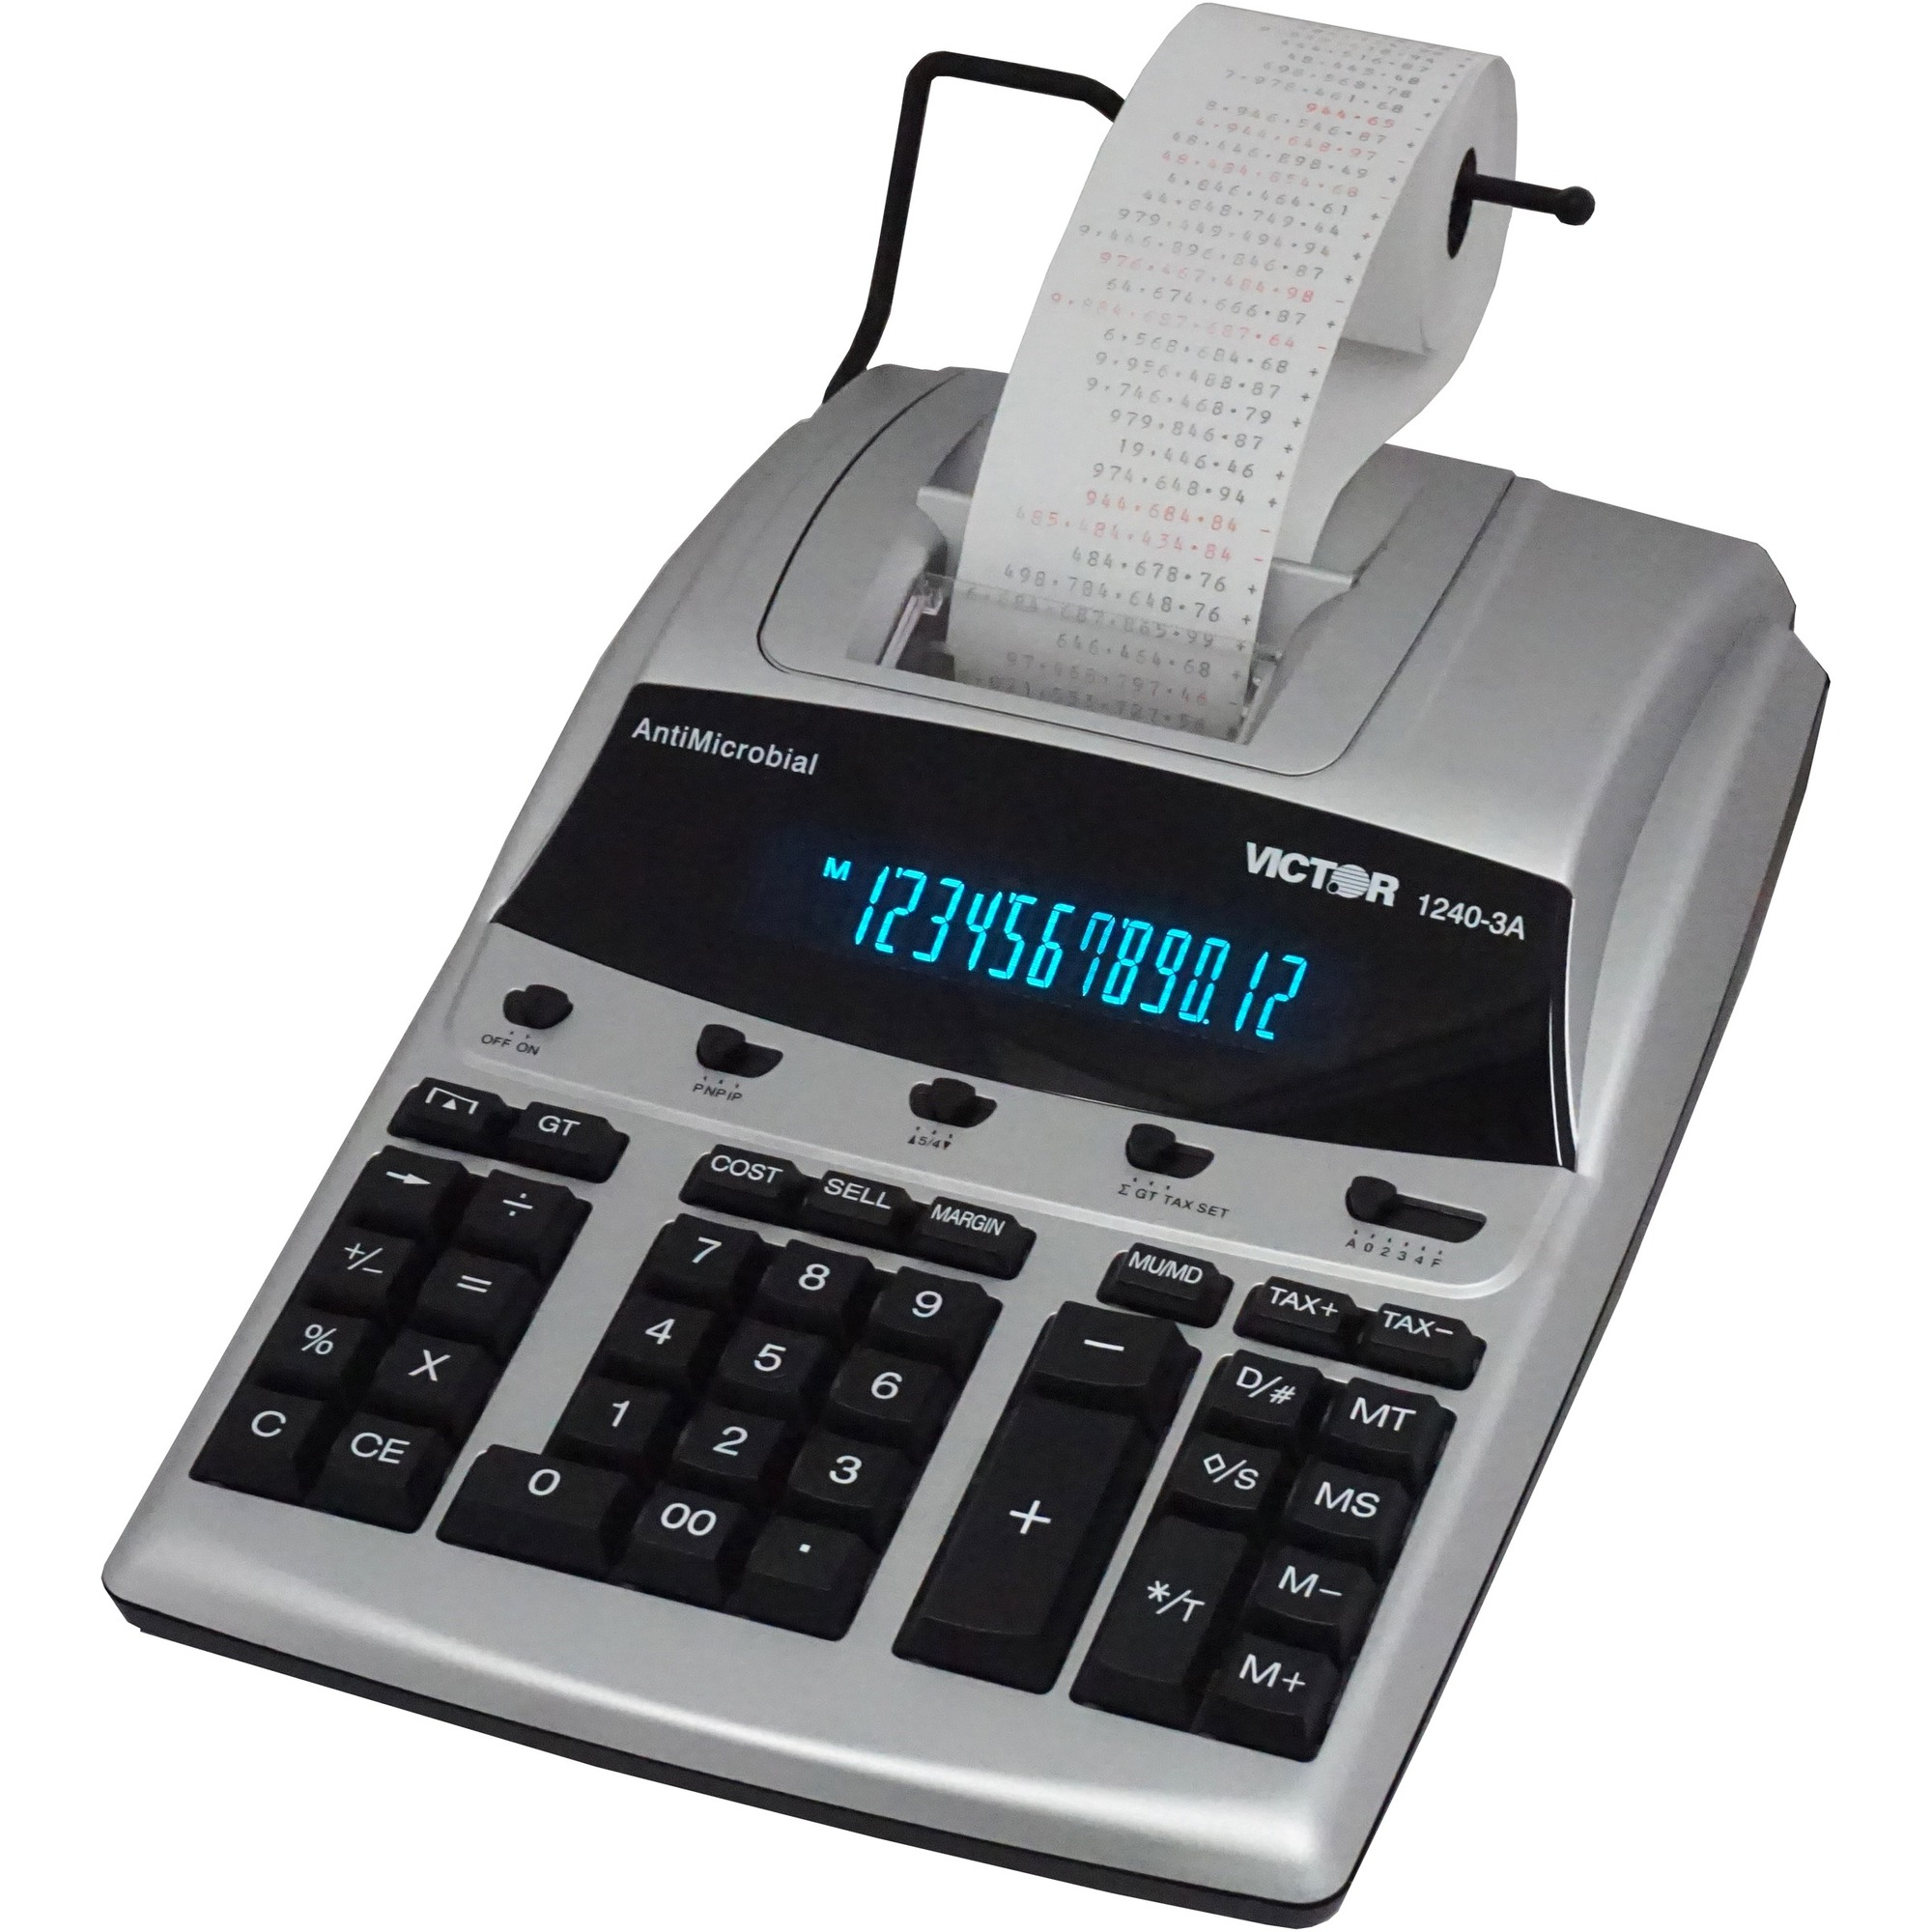 Power Surge Technologies Ltd Technology Office Machines Calculations For Supplies Professional Calculator Dual Color Print Dot Matrix 43 Lps Big Display Independent Memory 12 Digits Fluorescent Ac Supply Adapter